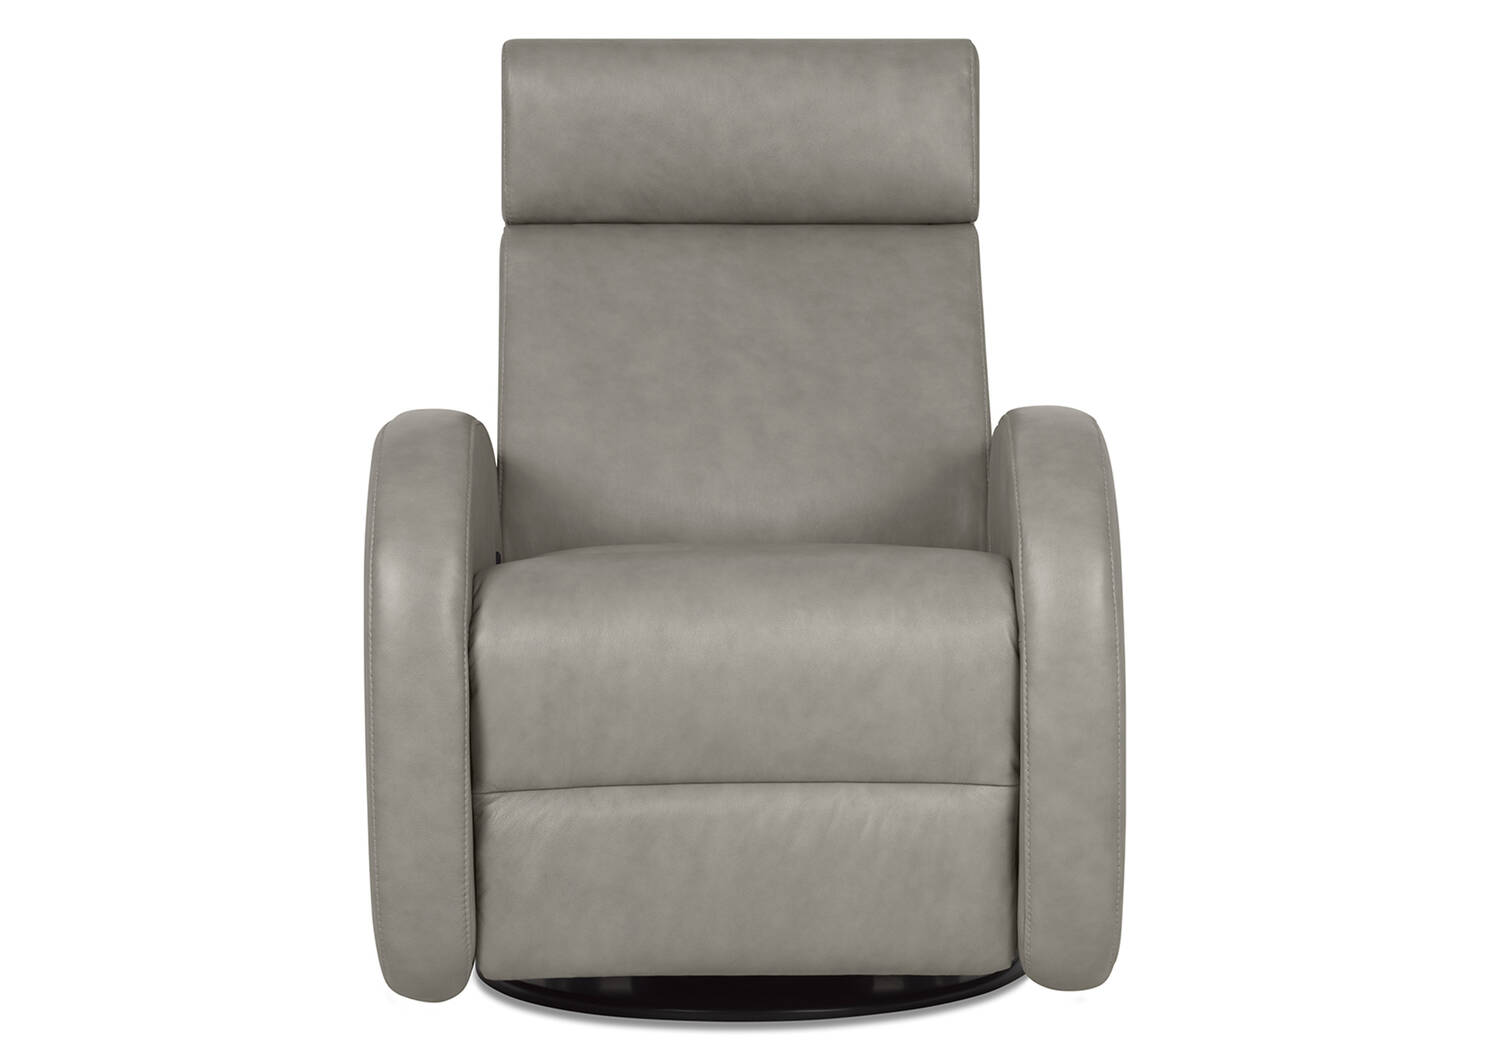 Imatra Custom Leather Recliner